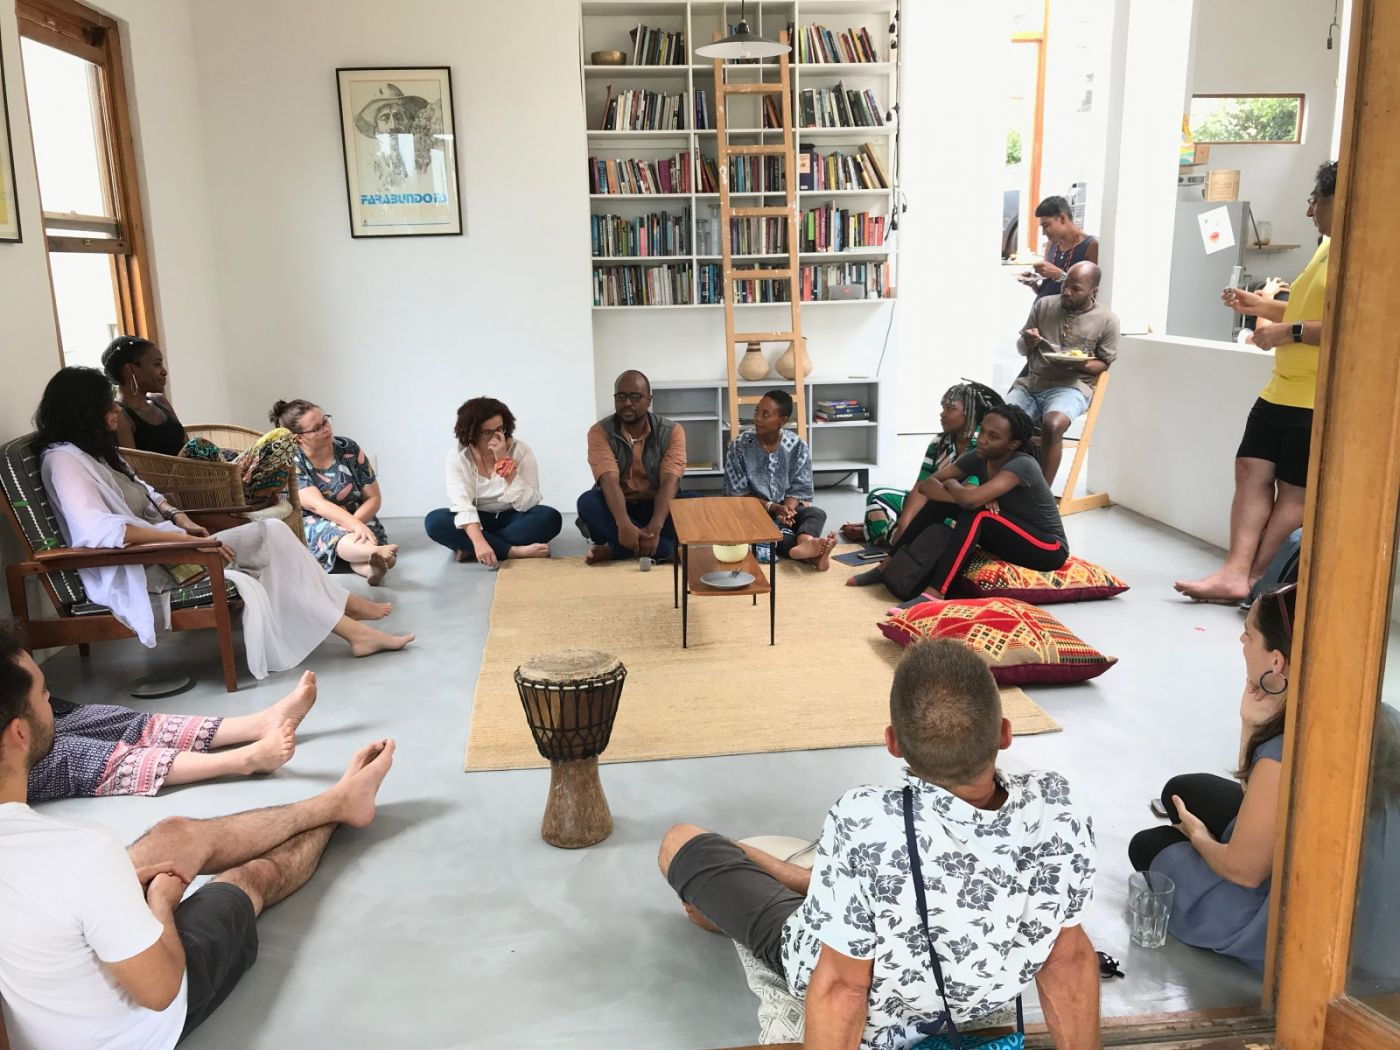 Is Unschooling the Way to Decolonize Education? – Next City